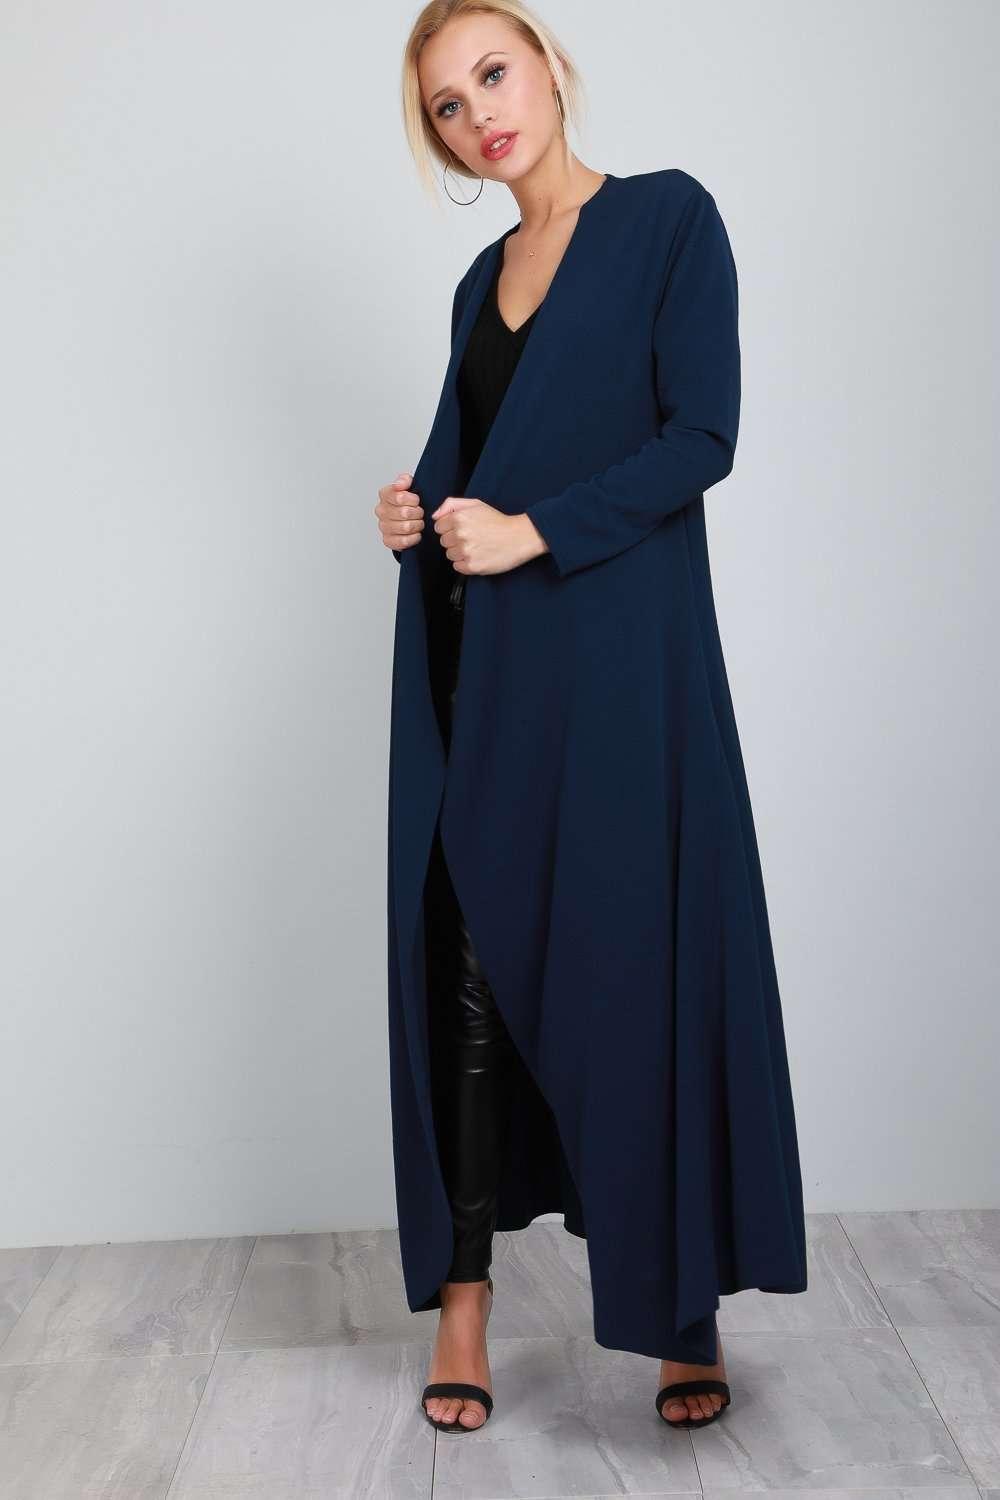 Saskia Long Sleeve Waterfall Maxi Cardigan - bejealous-com